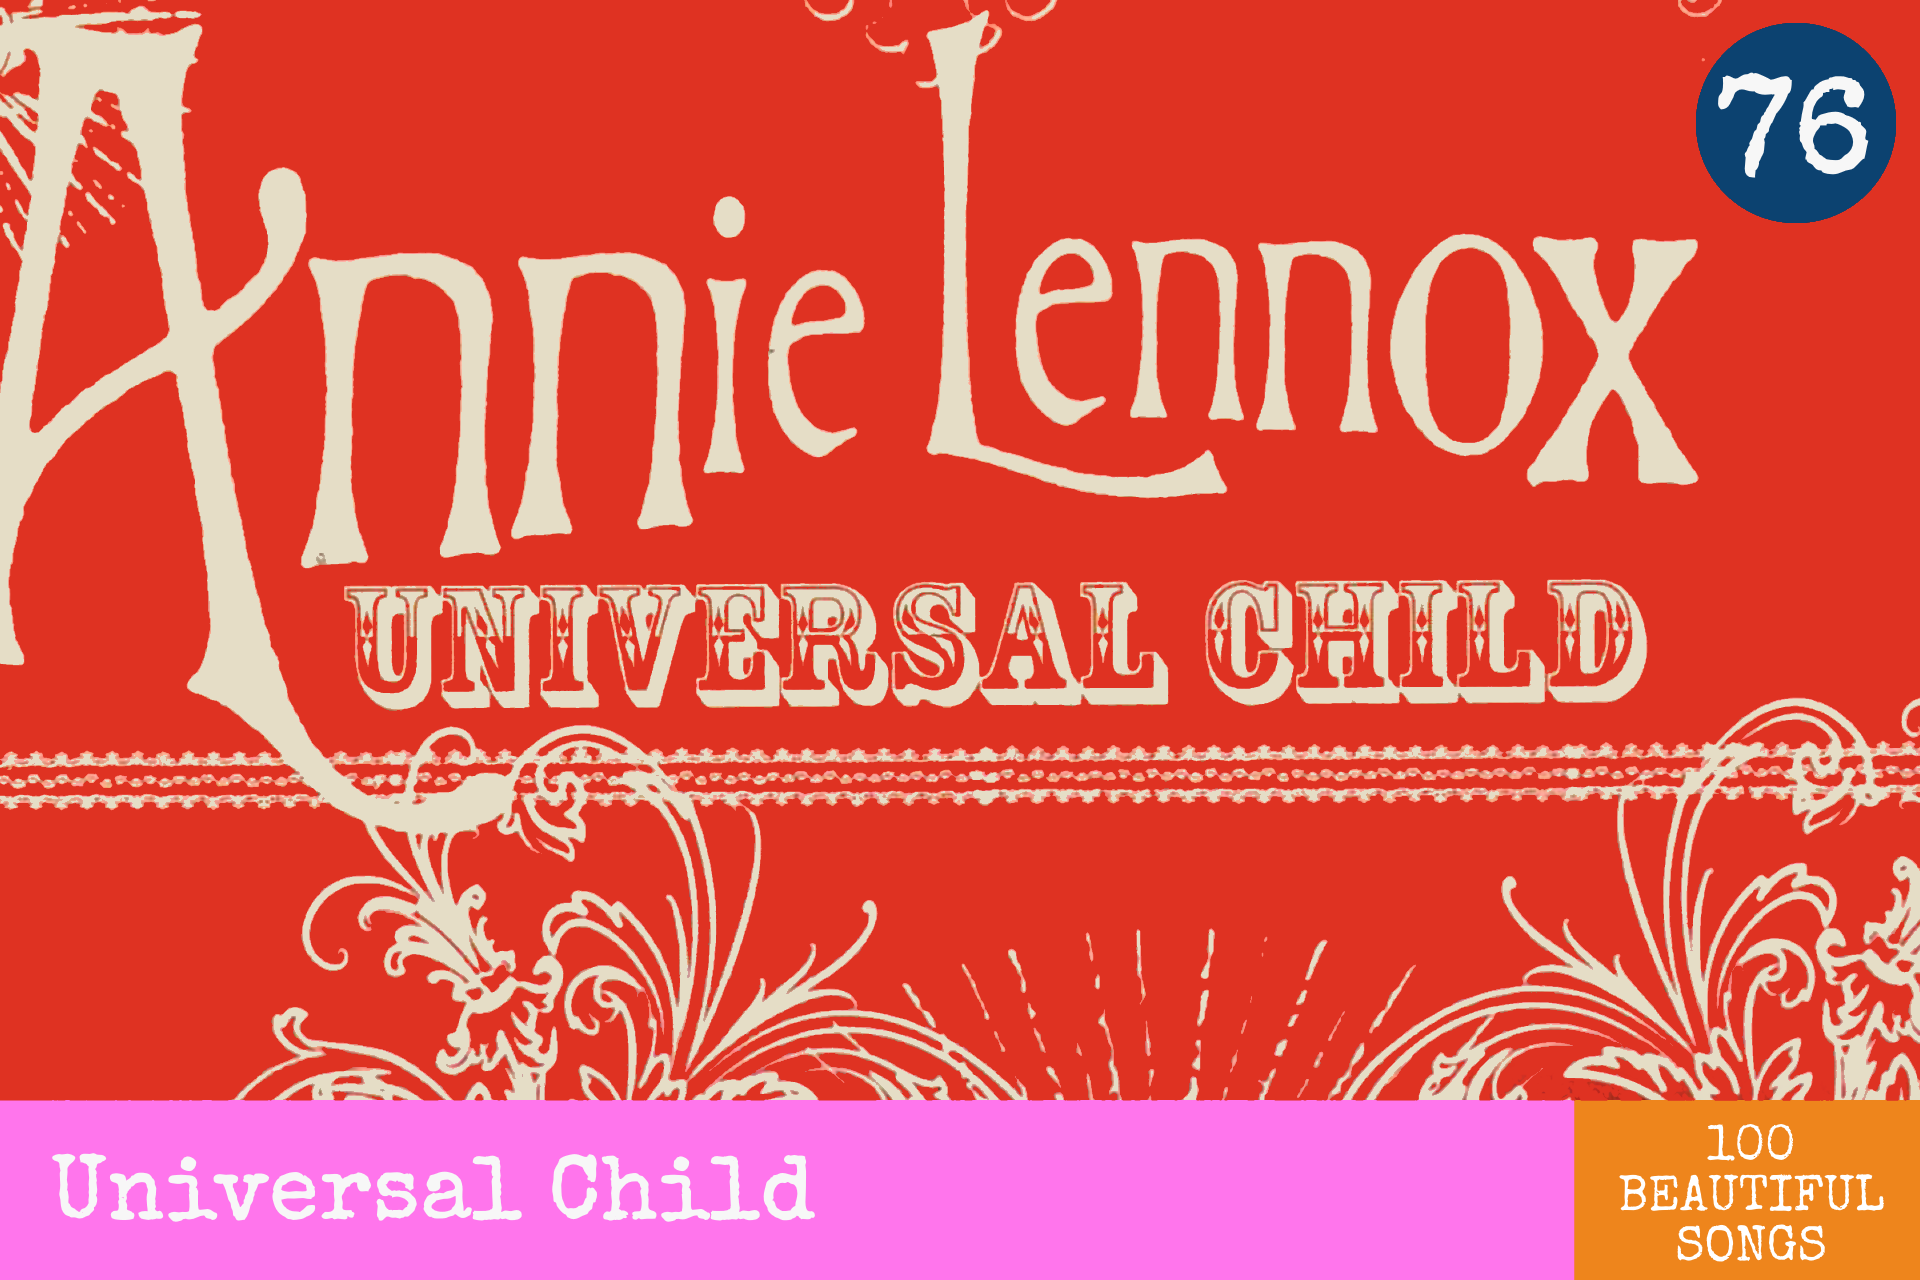 Number 76 Universal Child by Annie Lennox from A